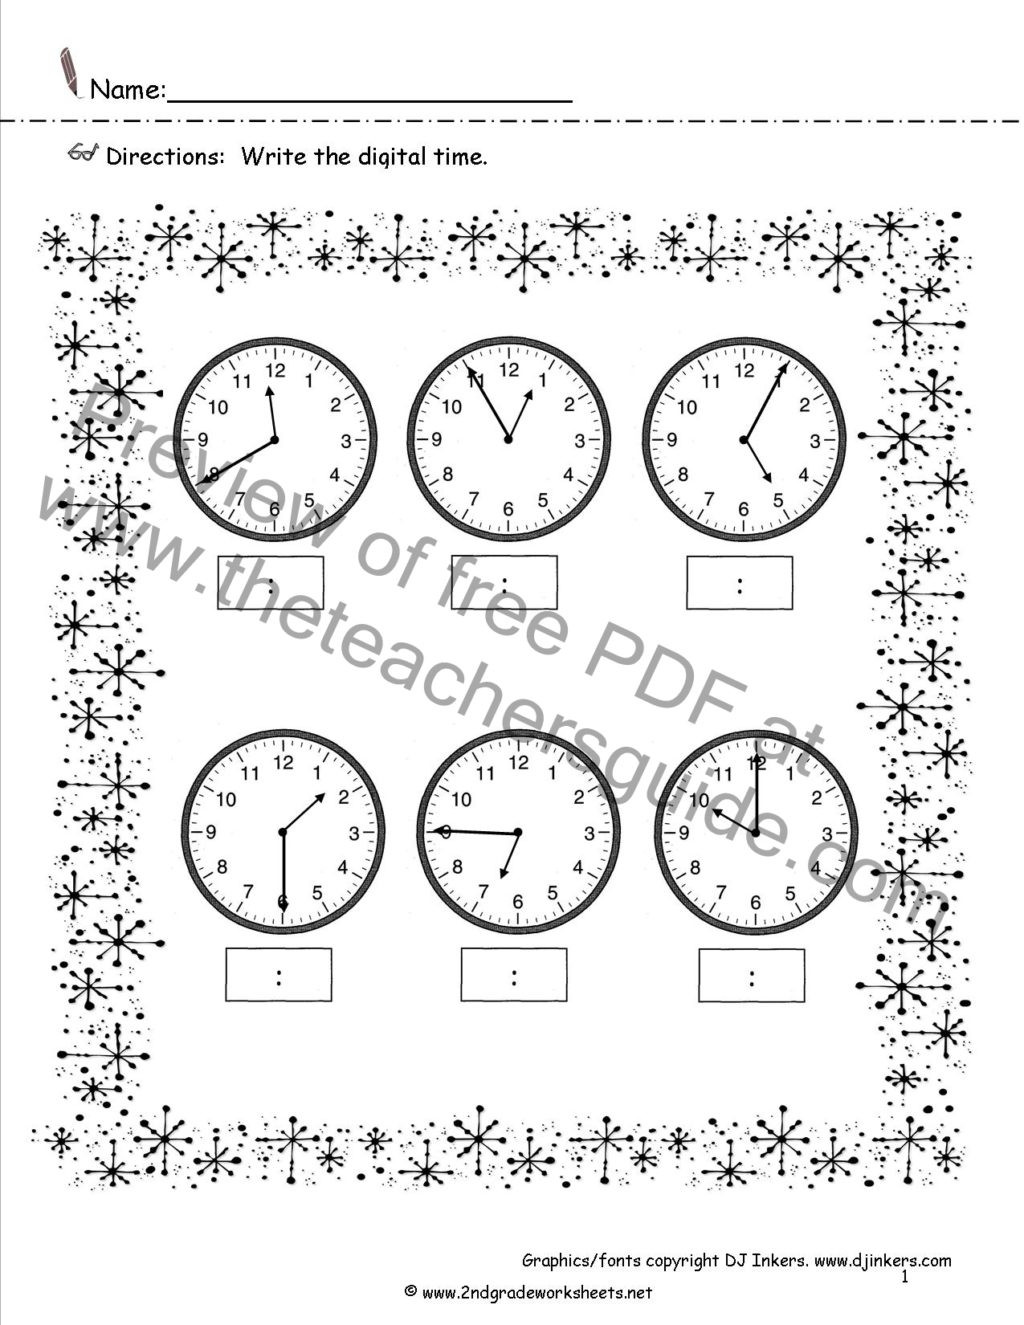 Array Worksheets for 2nd Graders Worksheet Fabulous Math Printables for 2nd Grade Picture